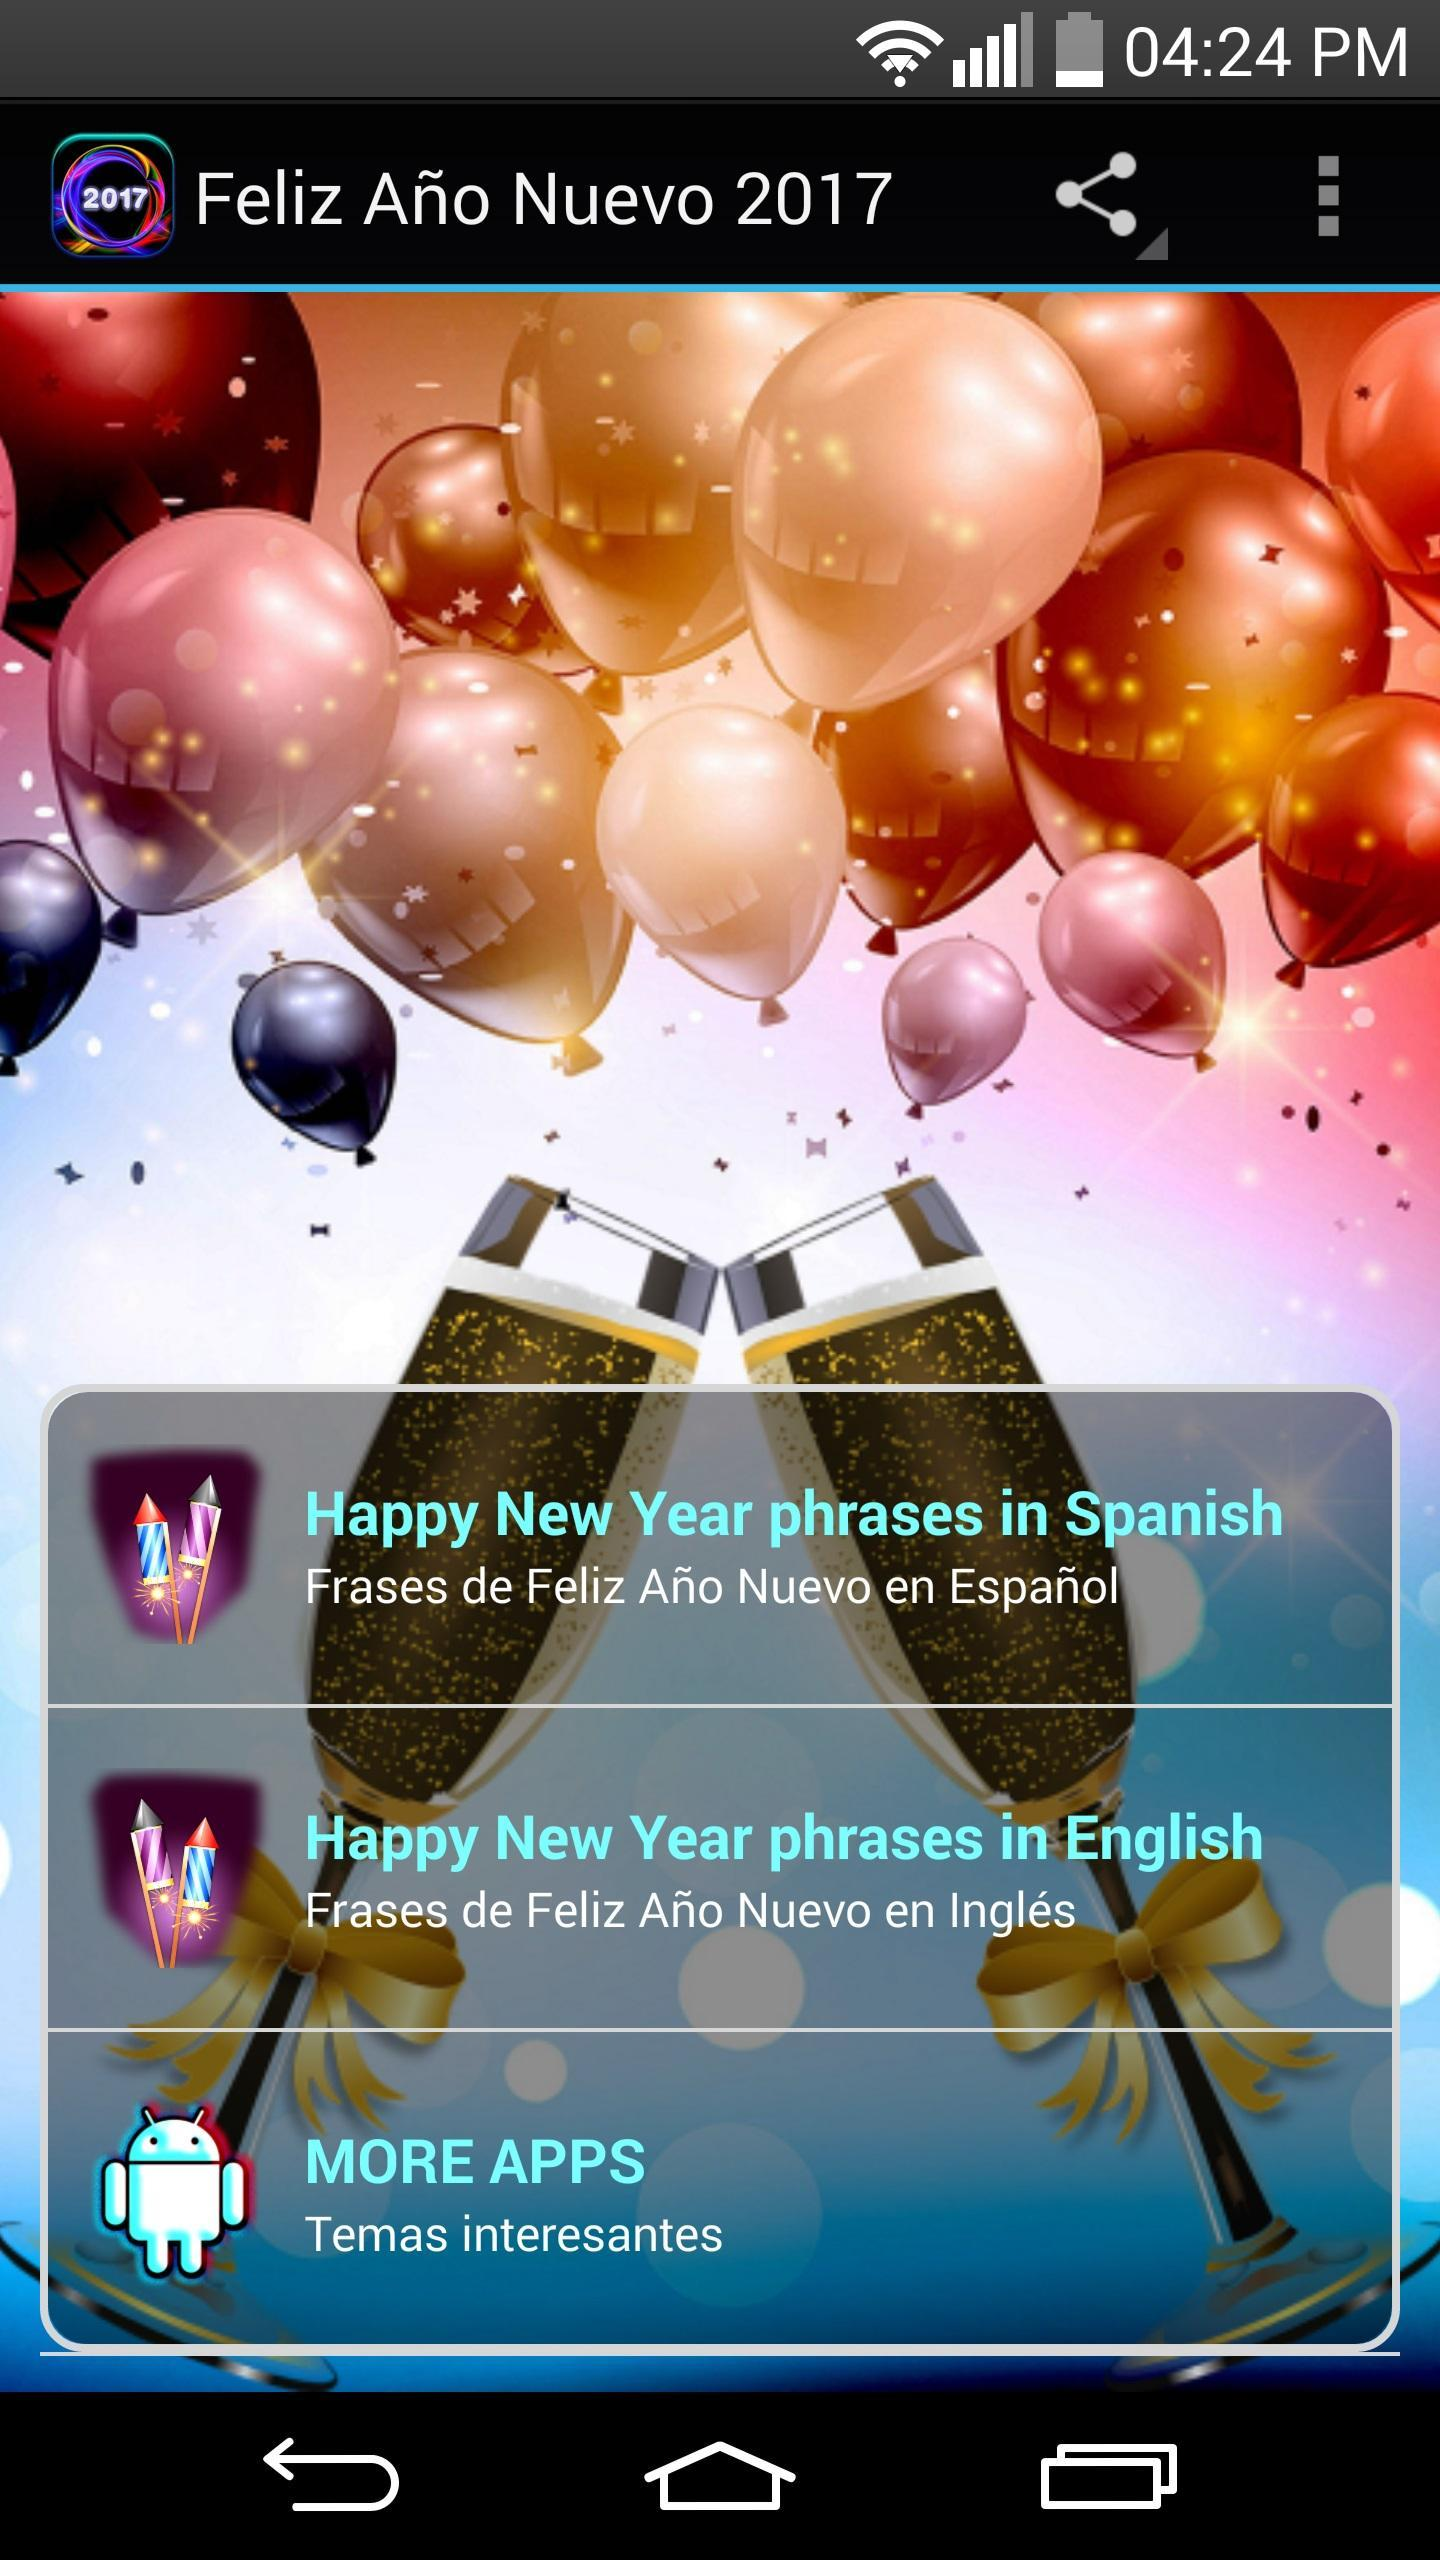 Feliz Año Nuevo 2017 For Android Apk Download